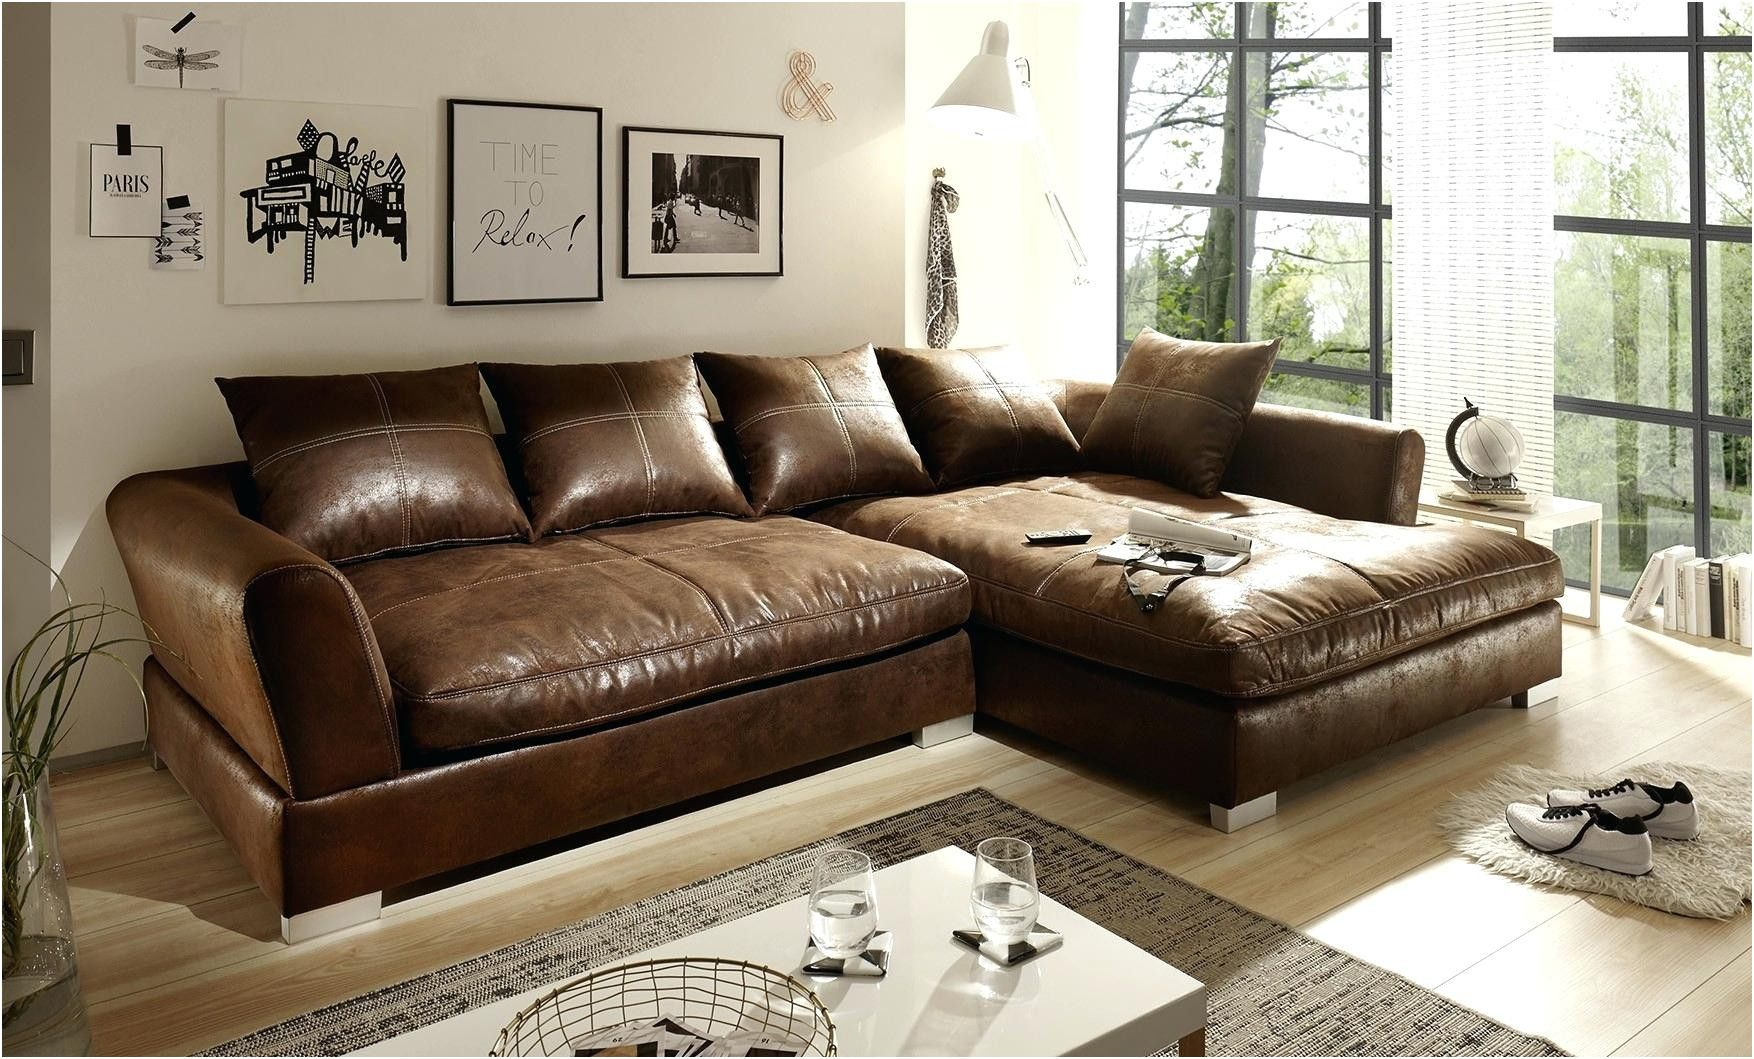 Relax Sofa Braun Kreativ Big Sofa Echtleder Couch Möbel In 2019 Big Sofas